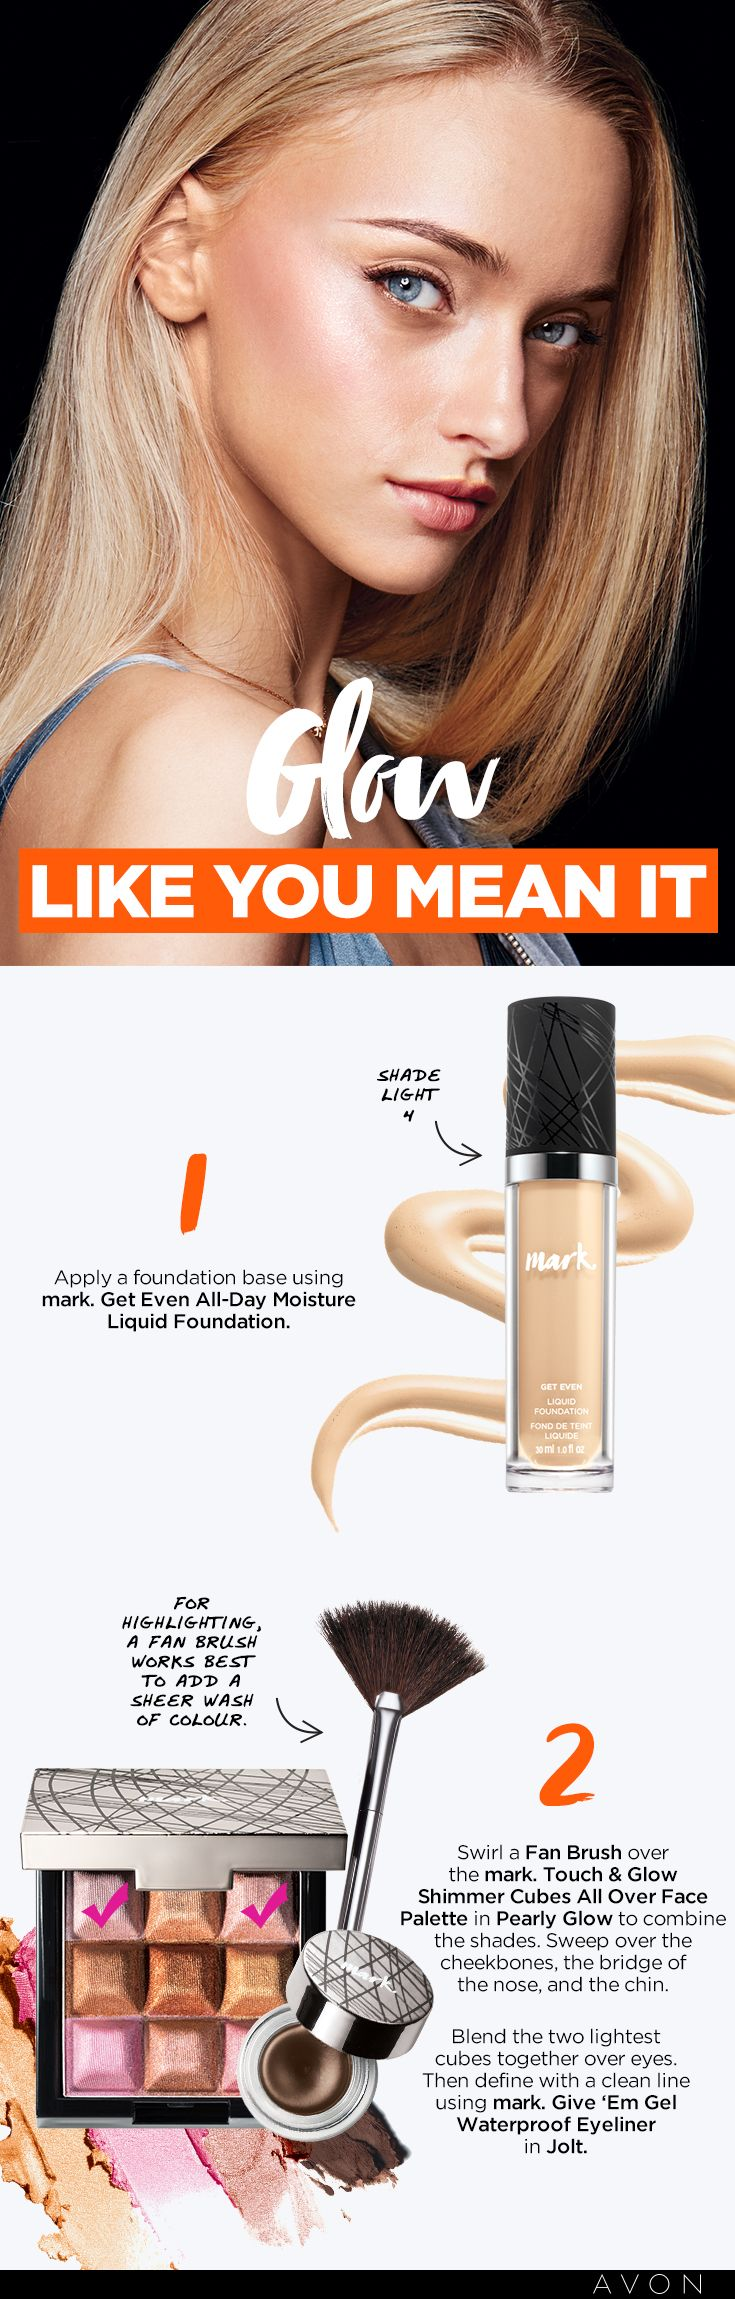 To get this look, skip the heavy makeup and focus on your glow. | Shop this look at my eStore: http://avon4.me/1PpVtya